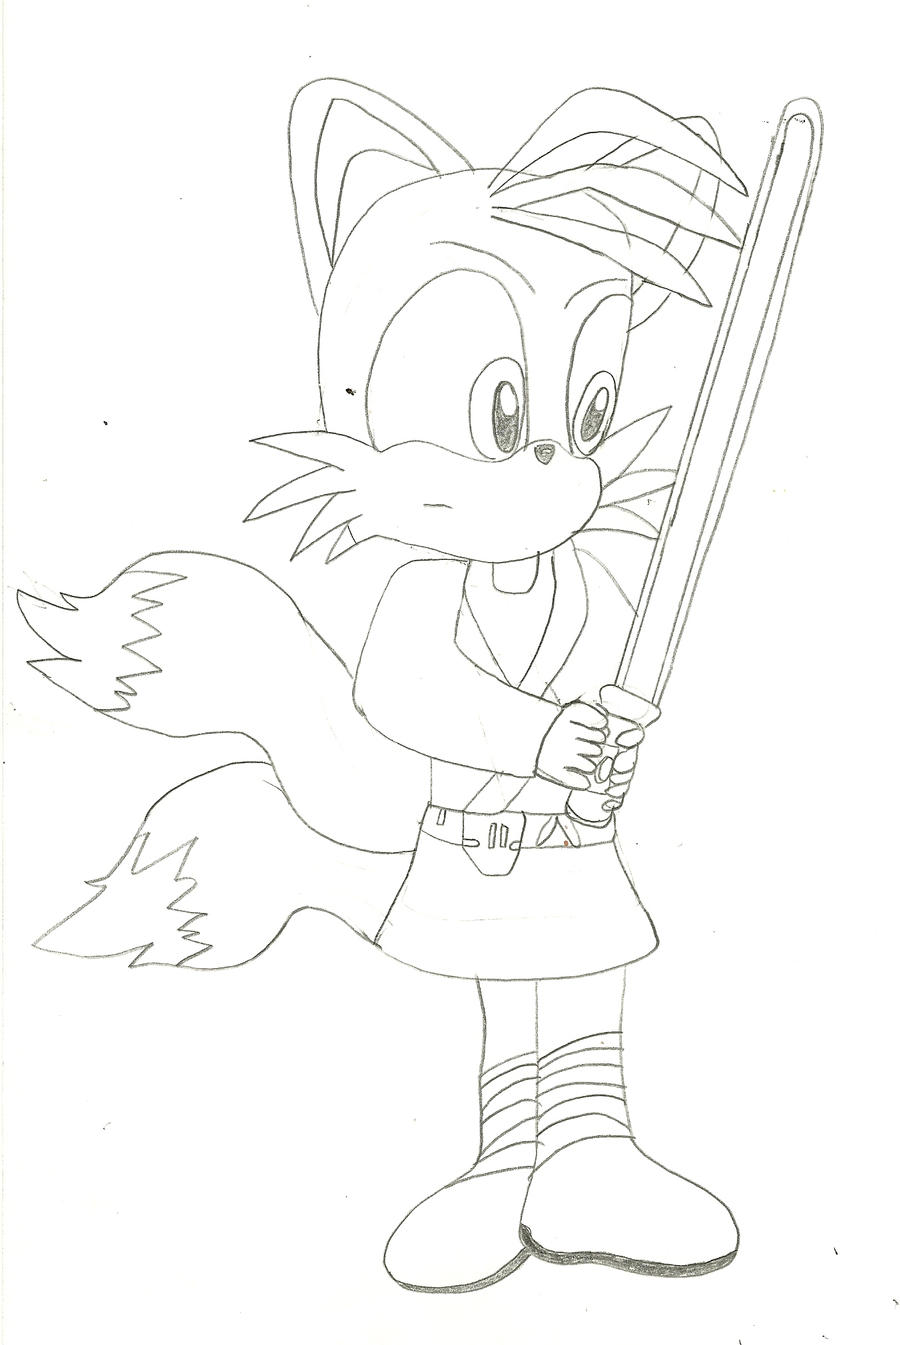 tails luke skywalker by deitz94 on deviantart